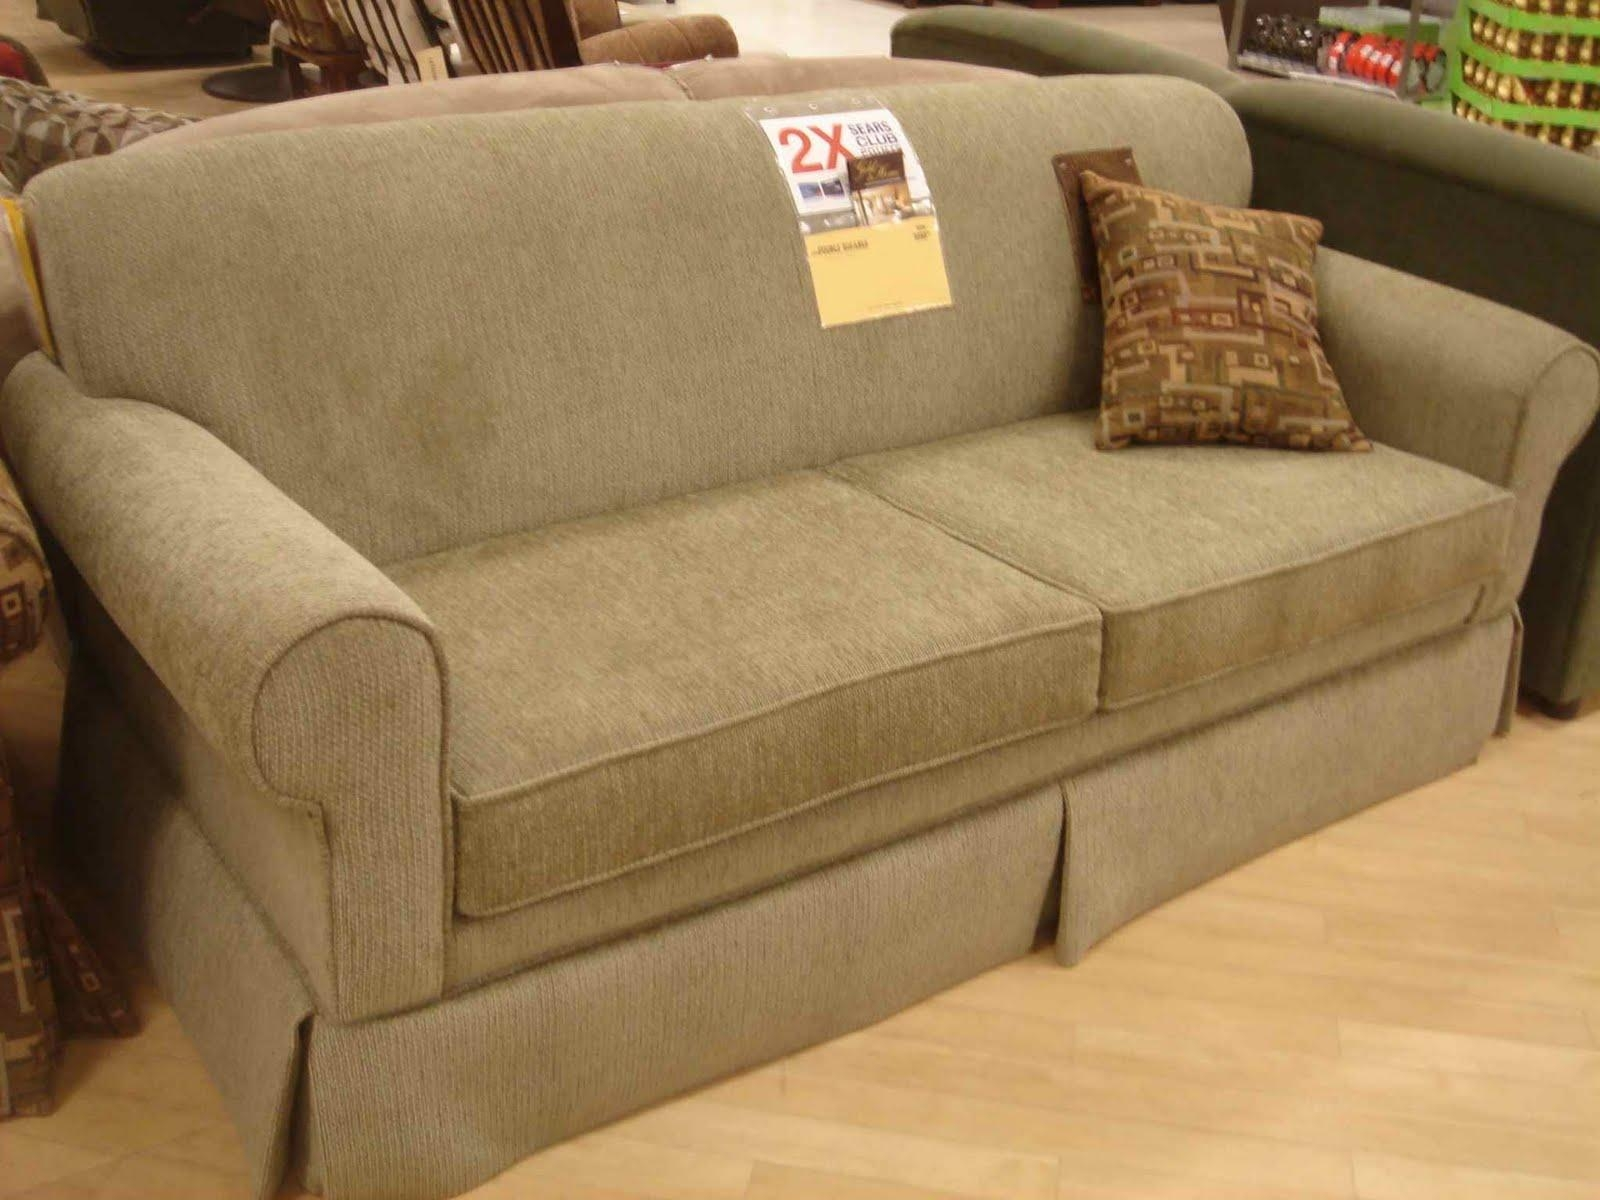 Loveseat Sleeper Sofa Sears | Tehranmix Decoration With Sears Sleeper Sofas (View 7 of 20)